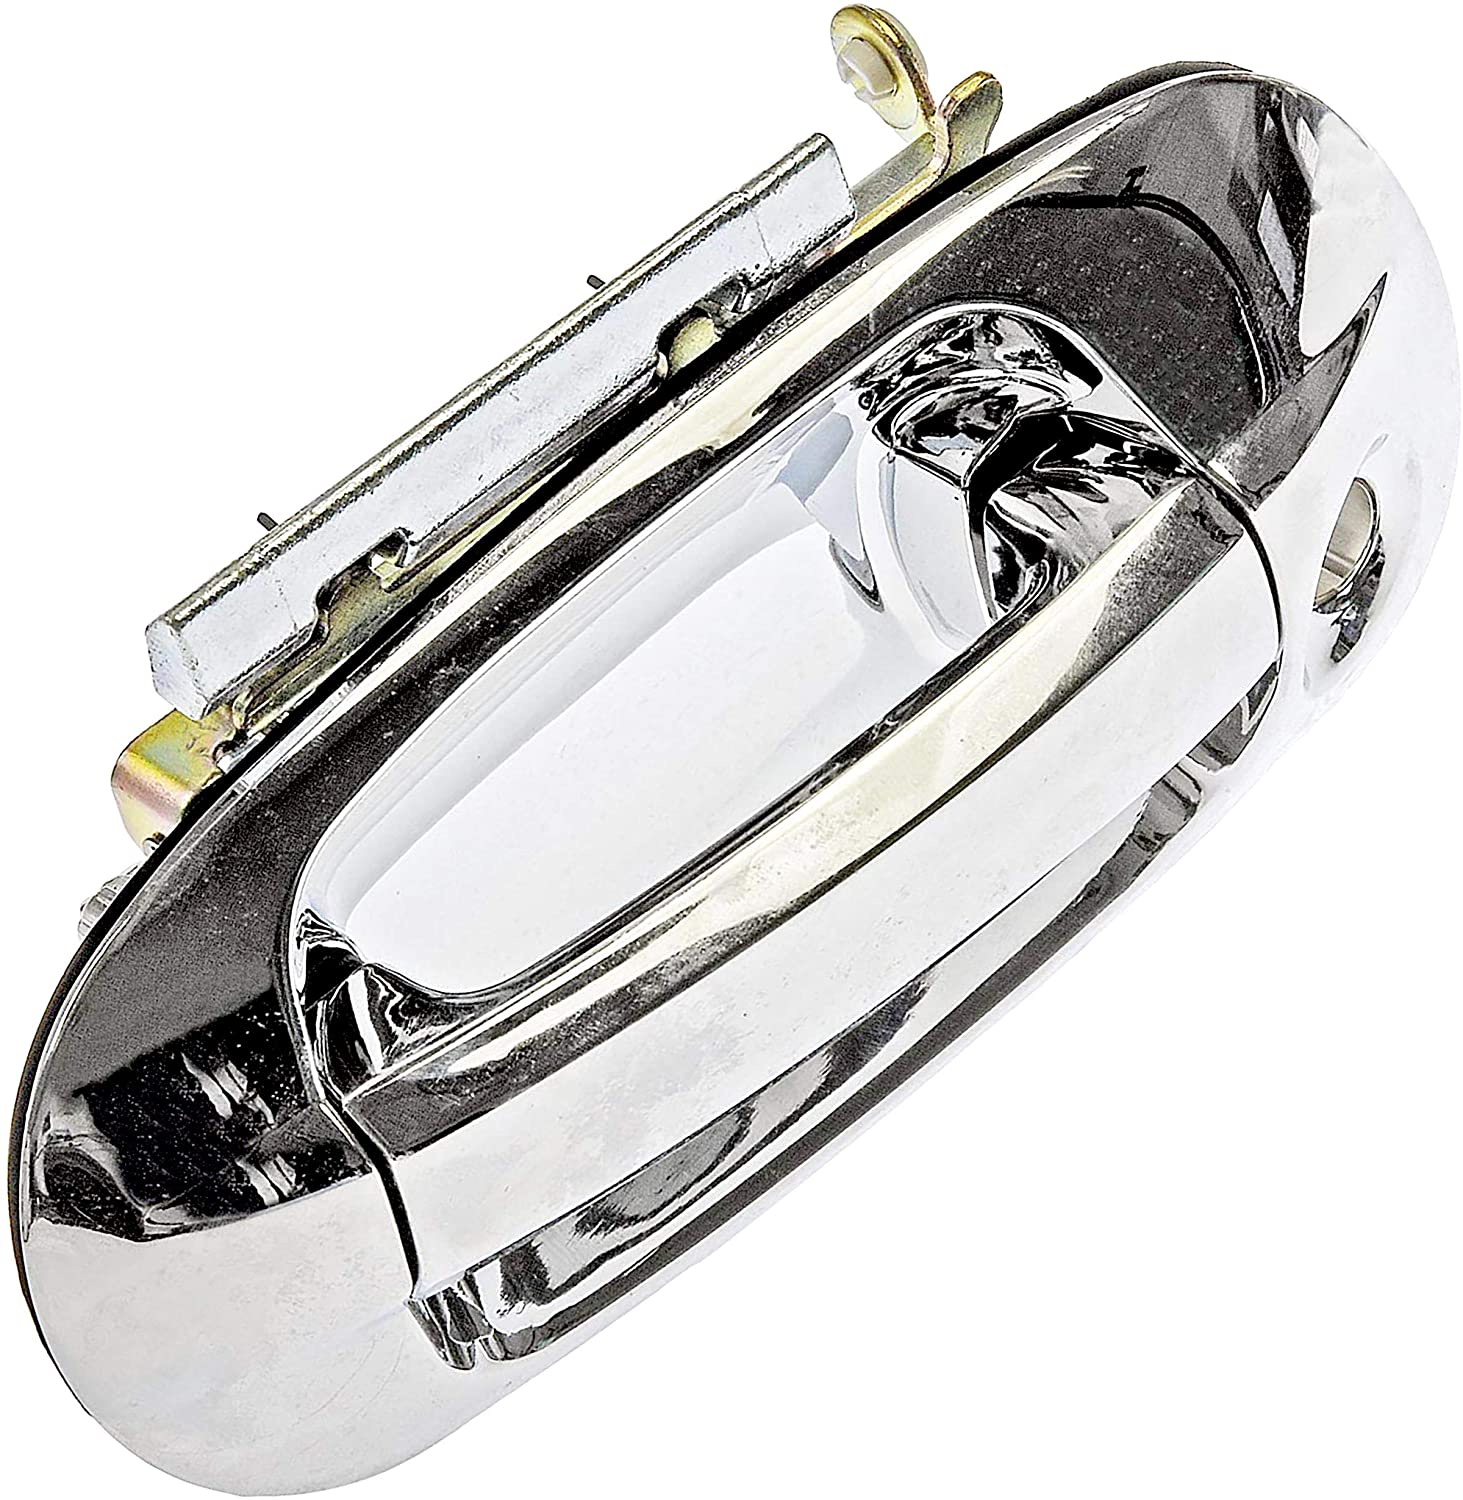 APDTY 143251 Exterior Door Handle Chrome Front Left (Driver-Side) Fits 2003-2015 Ford Expedition (Check Fitment Chart To Verify Fitment)